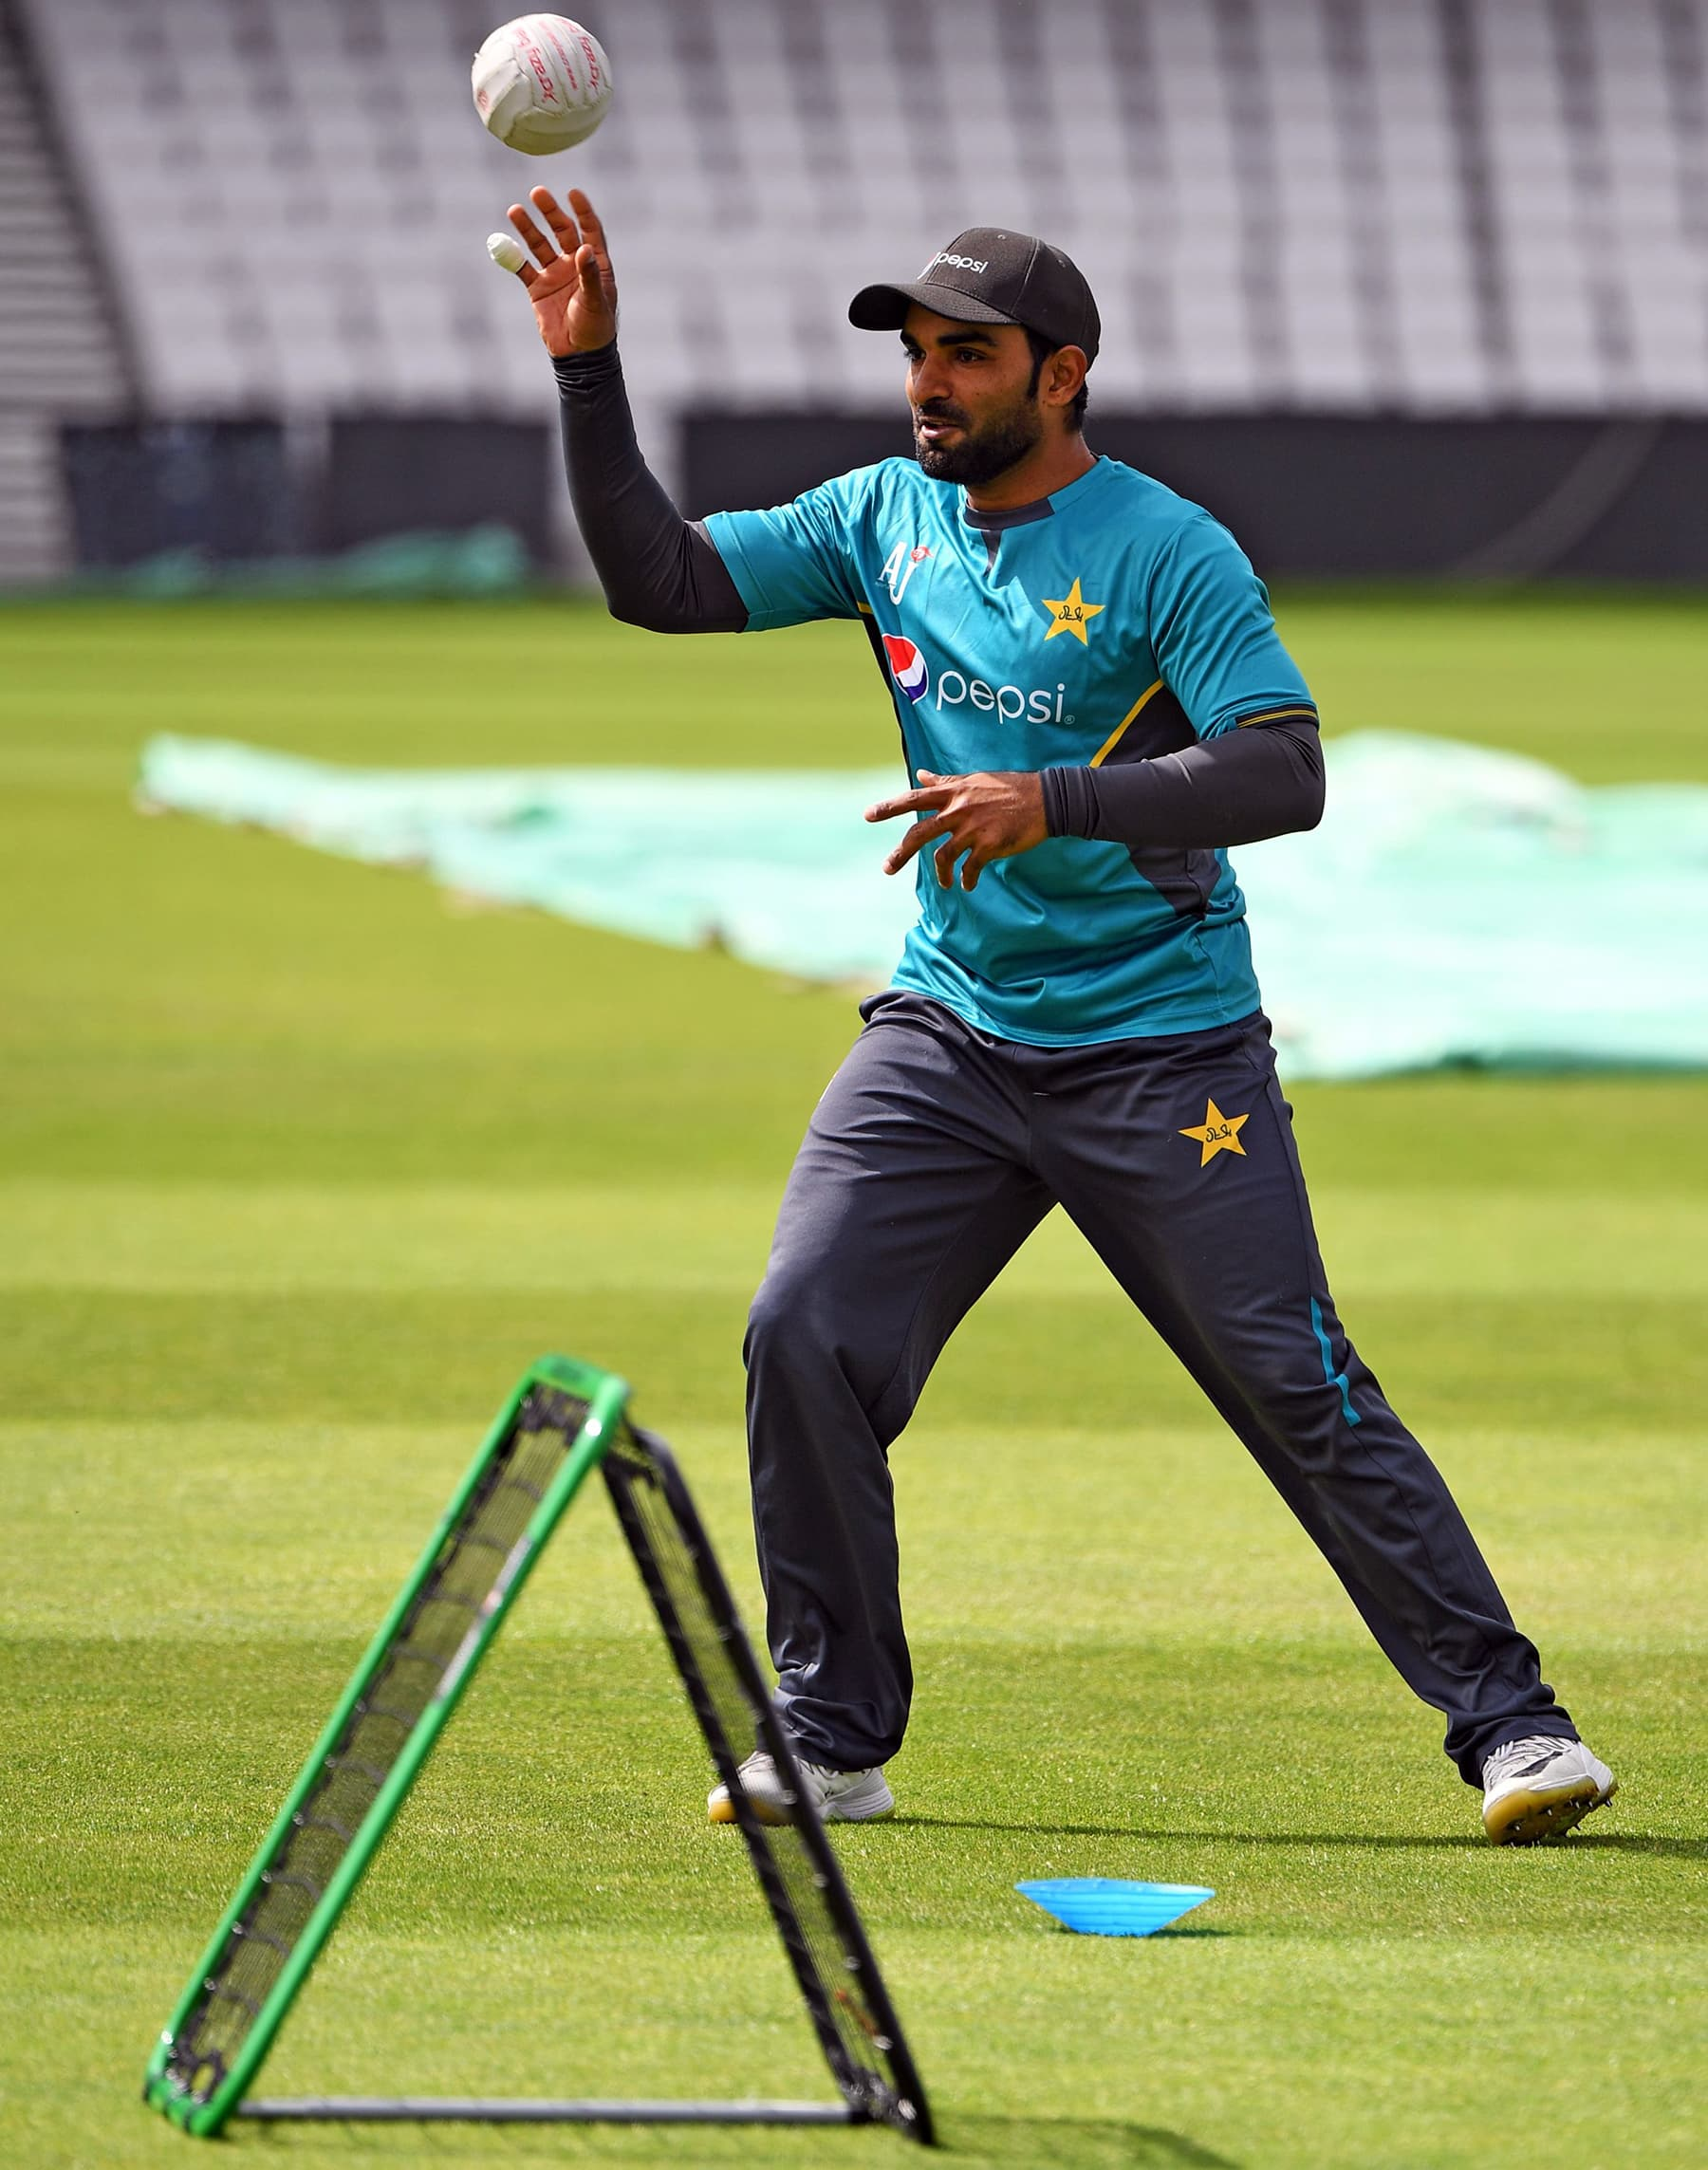 Asif Ali takes the ball during the training session at Headingly. — AFP